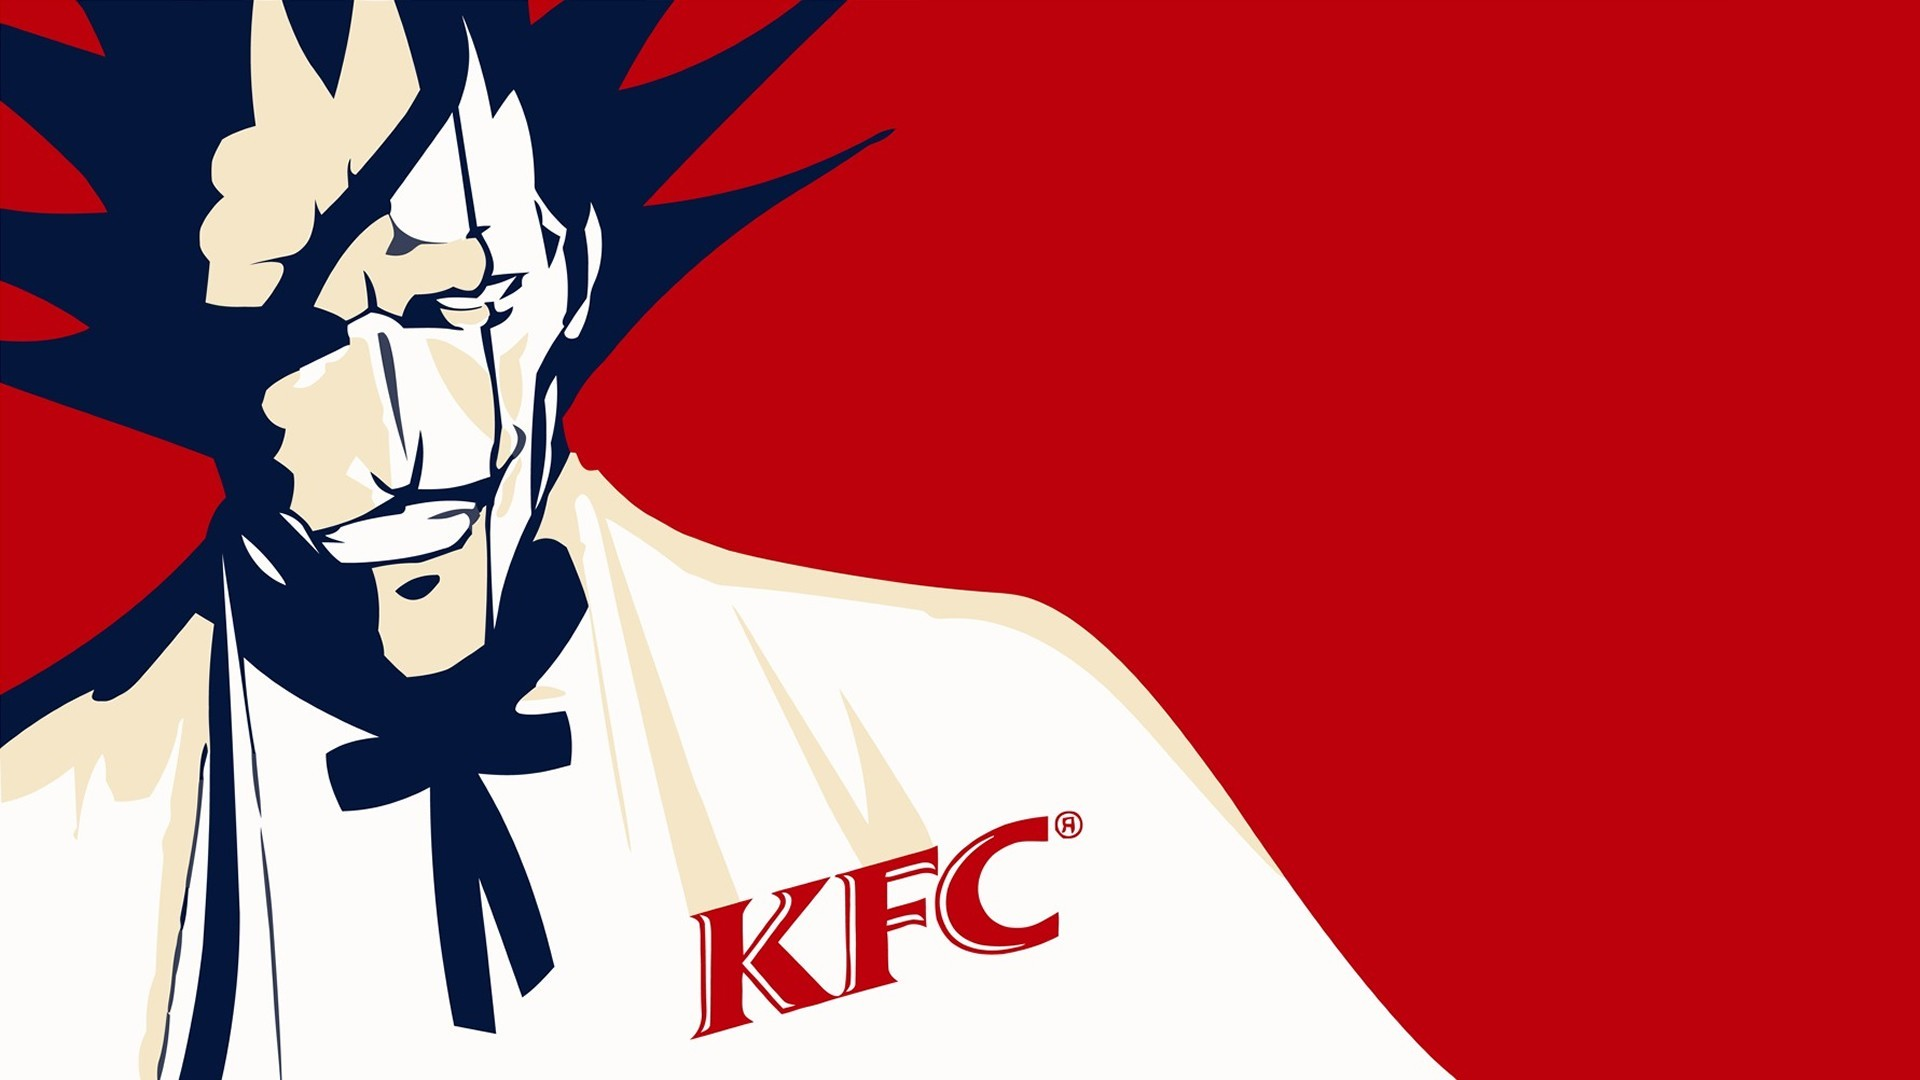 1920x1080 Bleach, Zaraki Kenpachi, Kfc Wallpapers HD / Desktop and Mobile Backgrounds